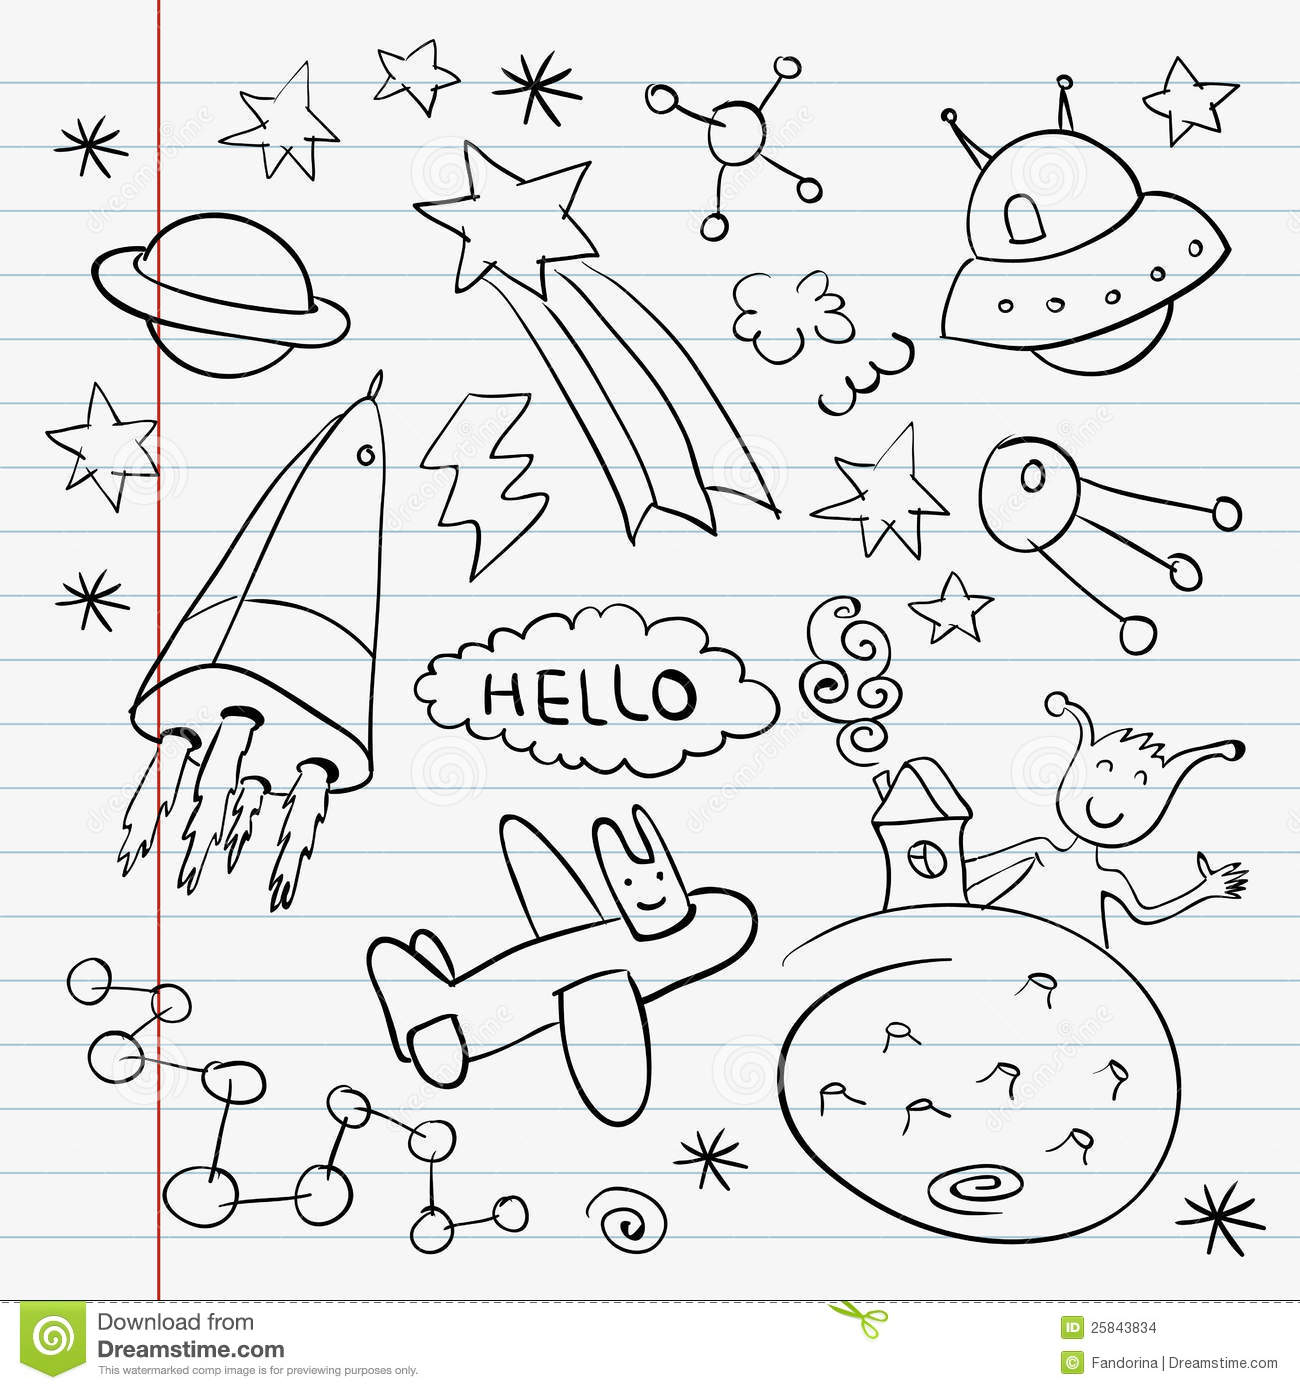 astronomy doodles - photo #35